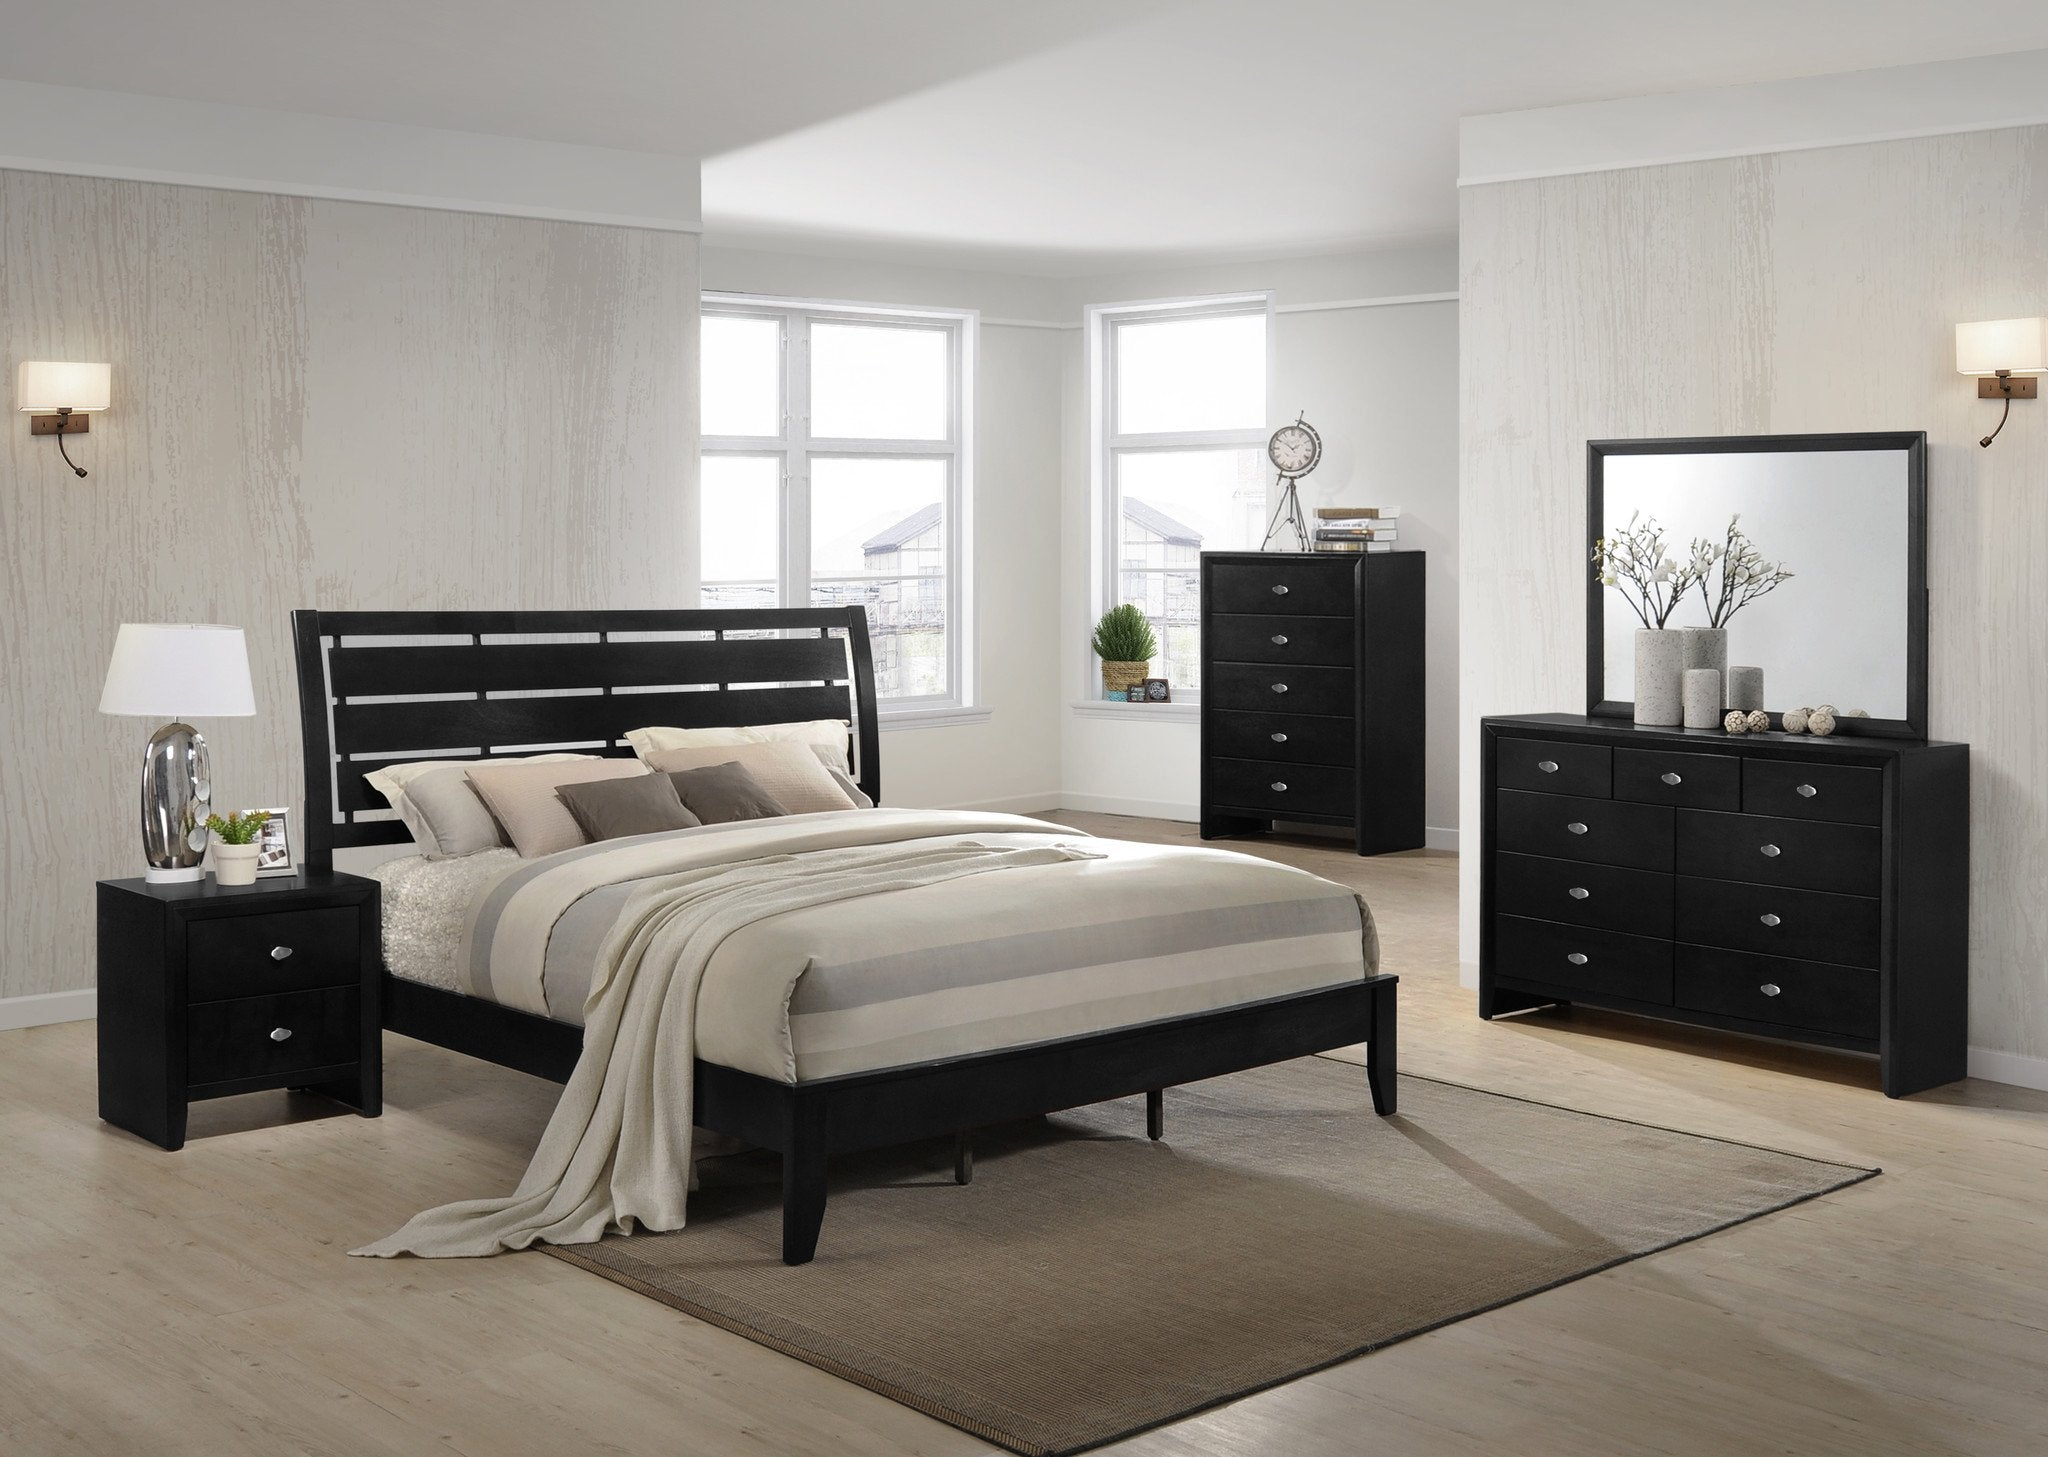 Ecrille 350 Black Wood Leather Bed Room Set - Queen Bed   Dresser   Mirror   Night Stand   Chest